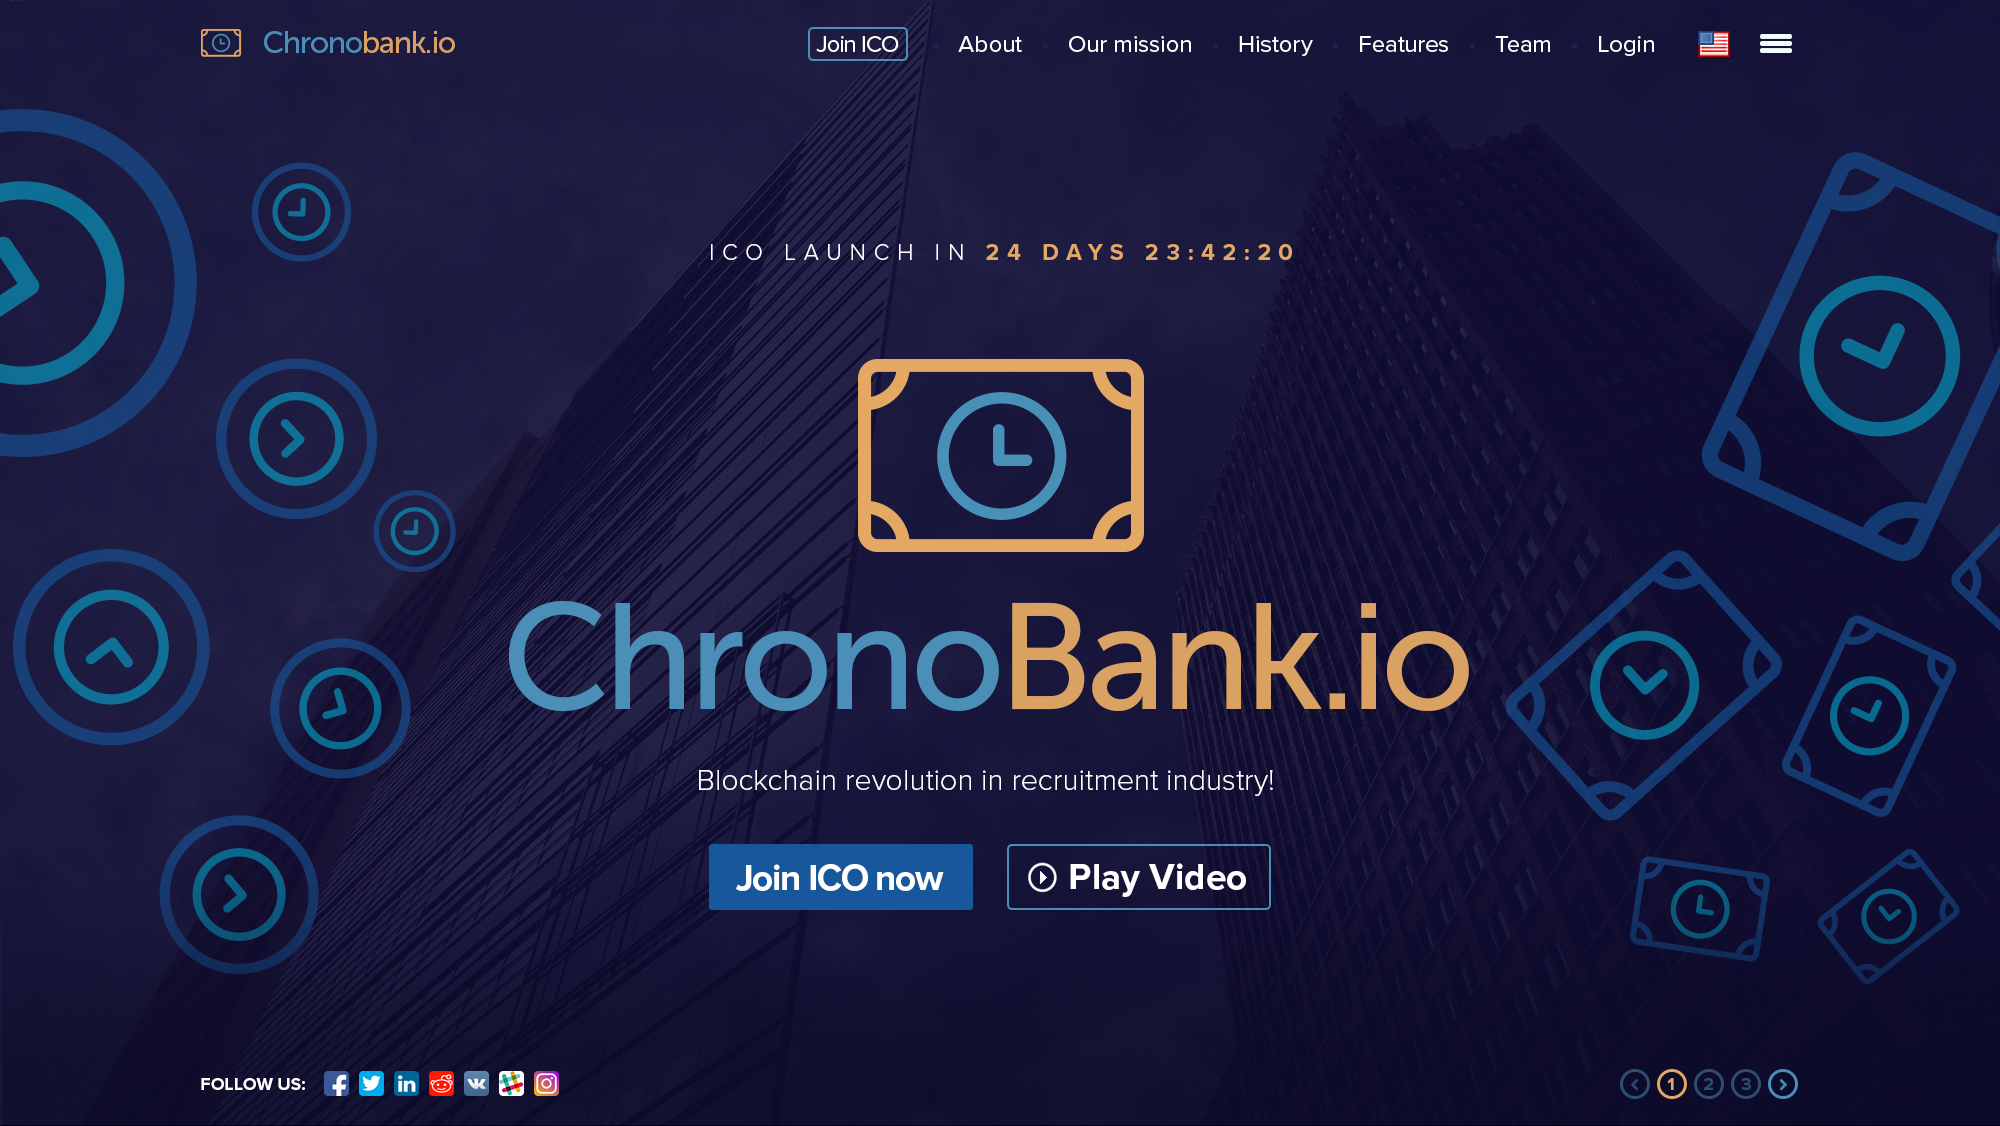 Chronobank.io screenshot